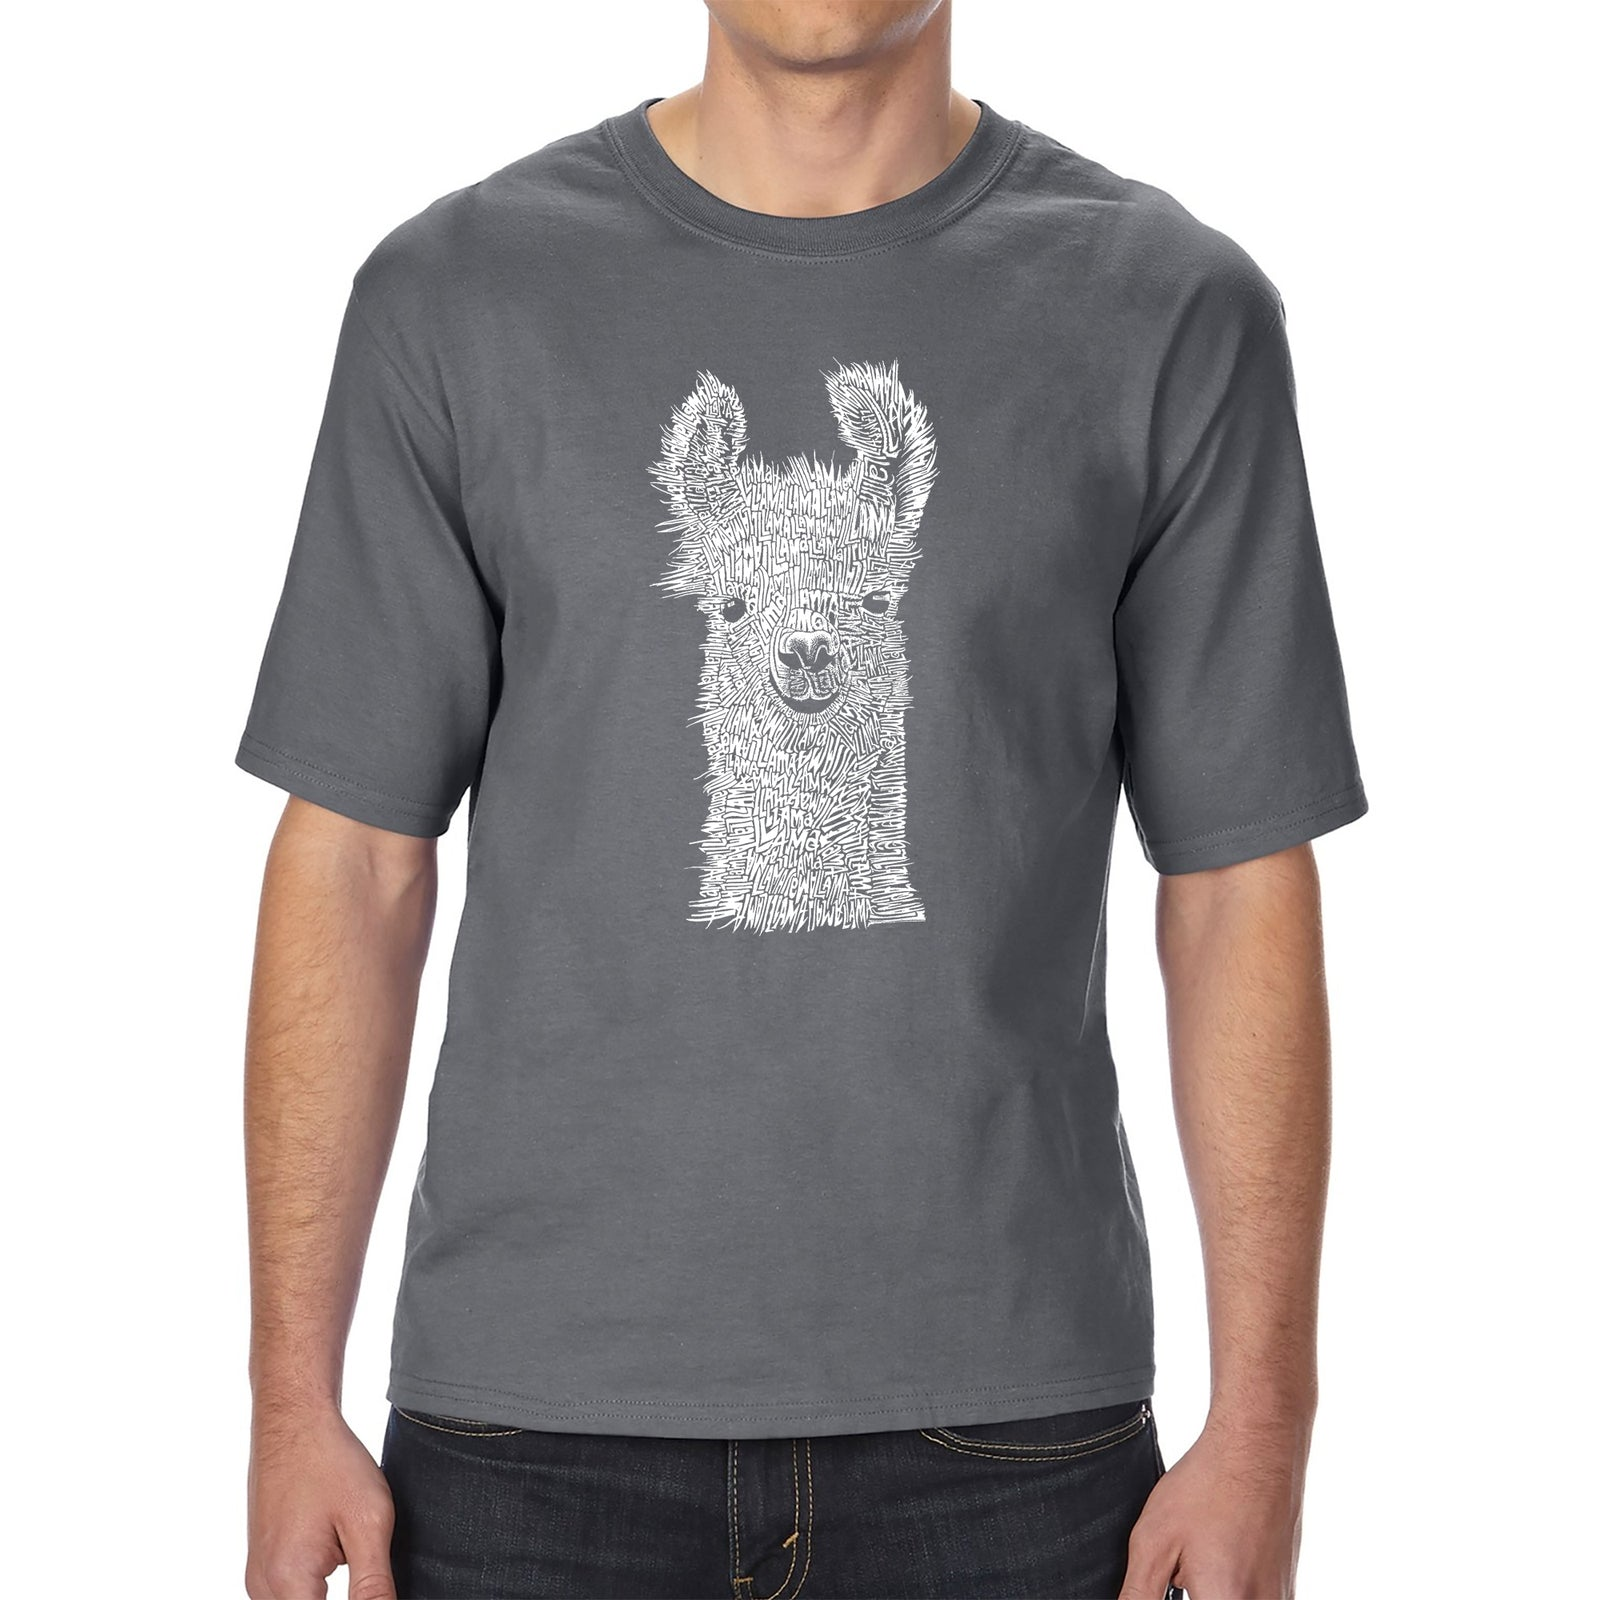 Men's Tall and Long Word Art T-shirt - Llama